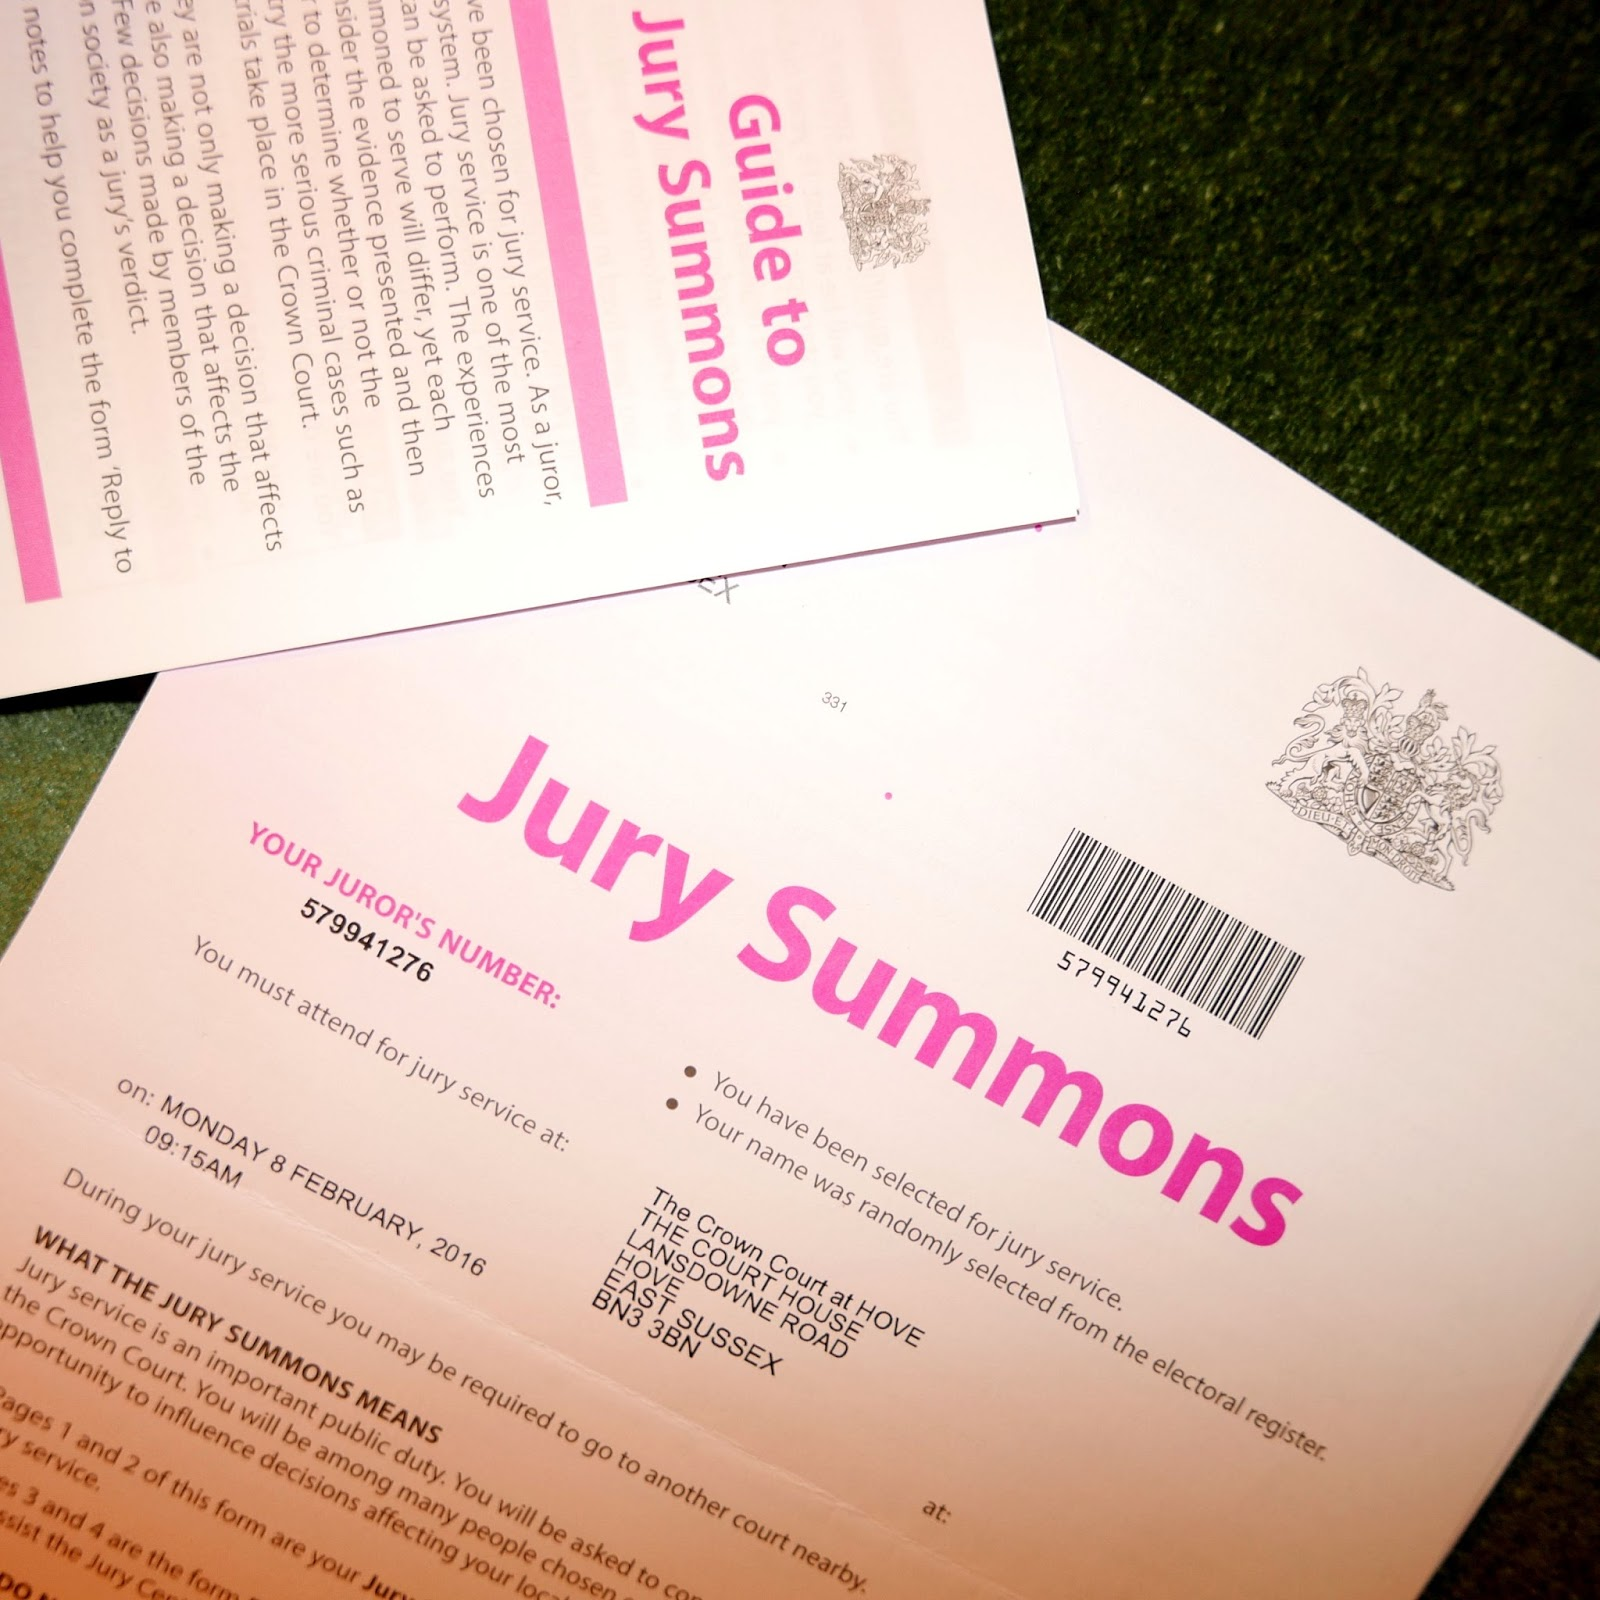 Lucy melford summoned to jury service summoned to jury service stopboris Image collections